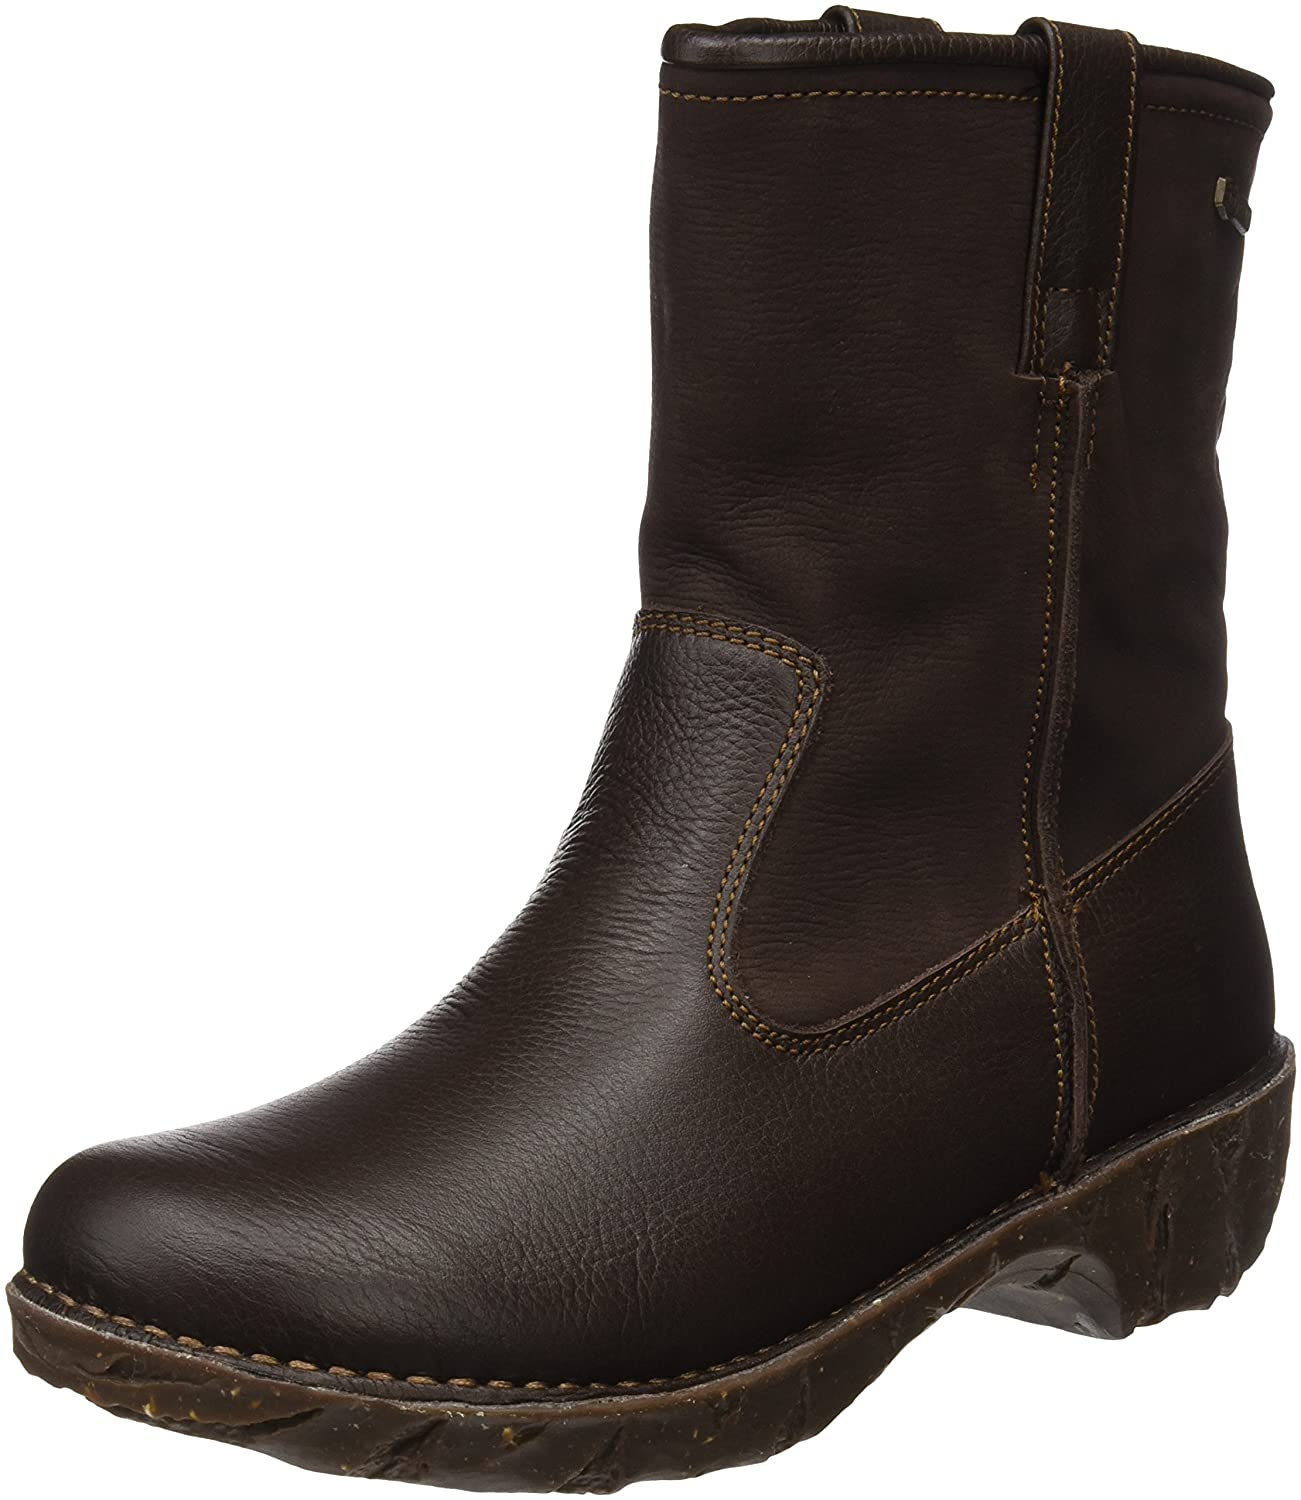 Womens Ng53 Soft Grain-Pleasant Yggdrasil Ankle Boots El Naturalista Best Buy Clearance 2018 New 1AtnI7Z